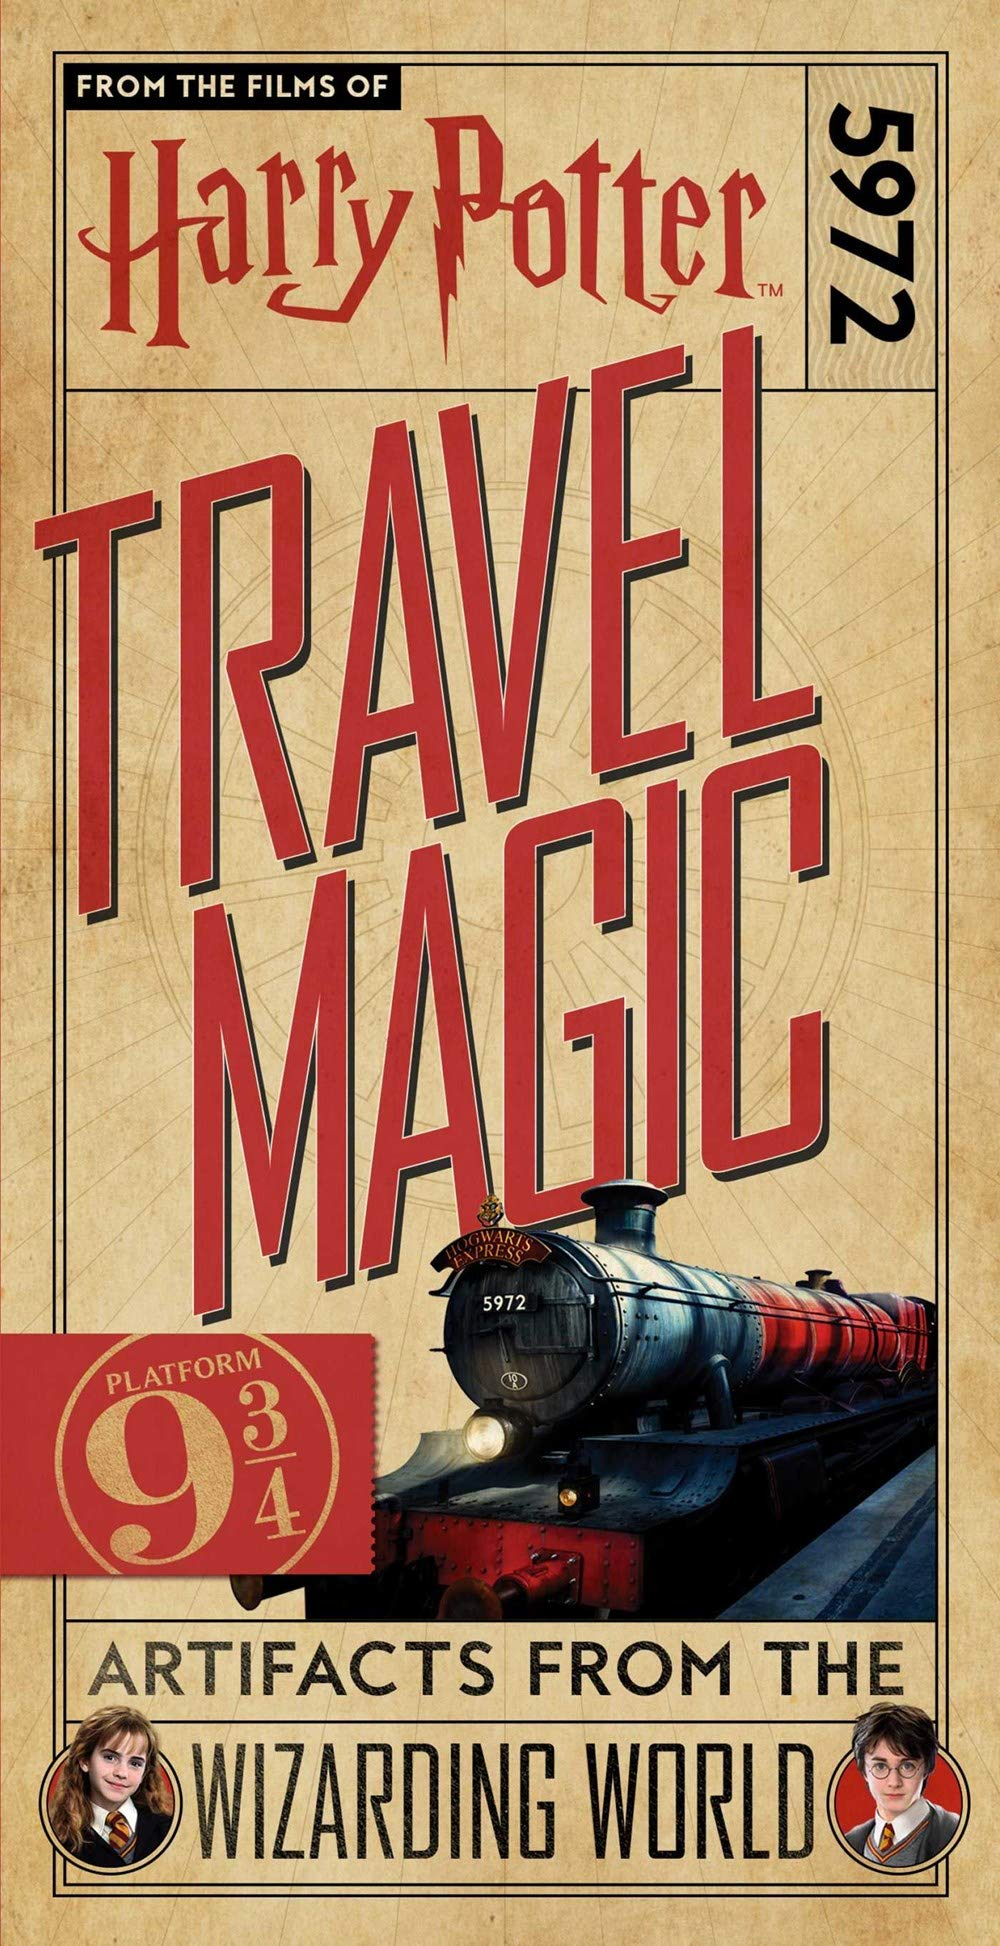 Harry Potter: Travel Magic - Platform 93/4: Artifacts from the Wizarding World